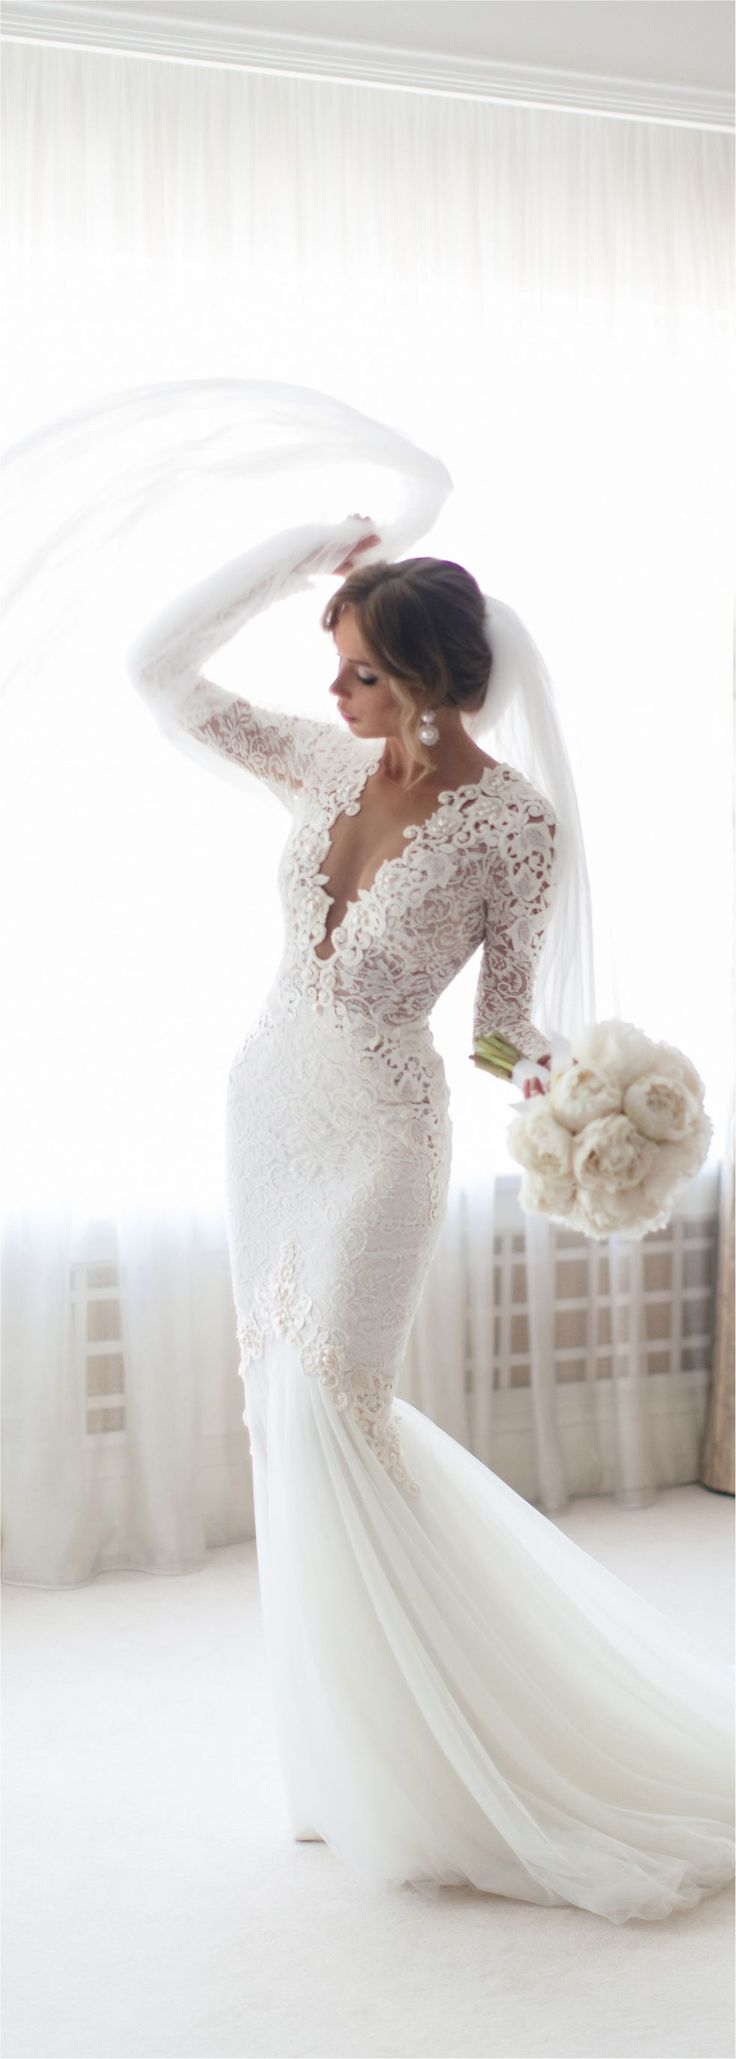 Mamma mia wedding dress   best Wedding Dresses images on Pinterest  Gown wedding Groom